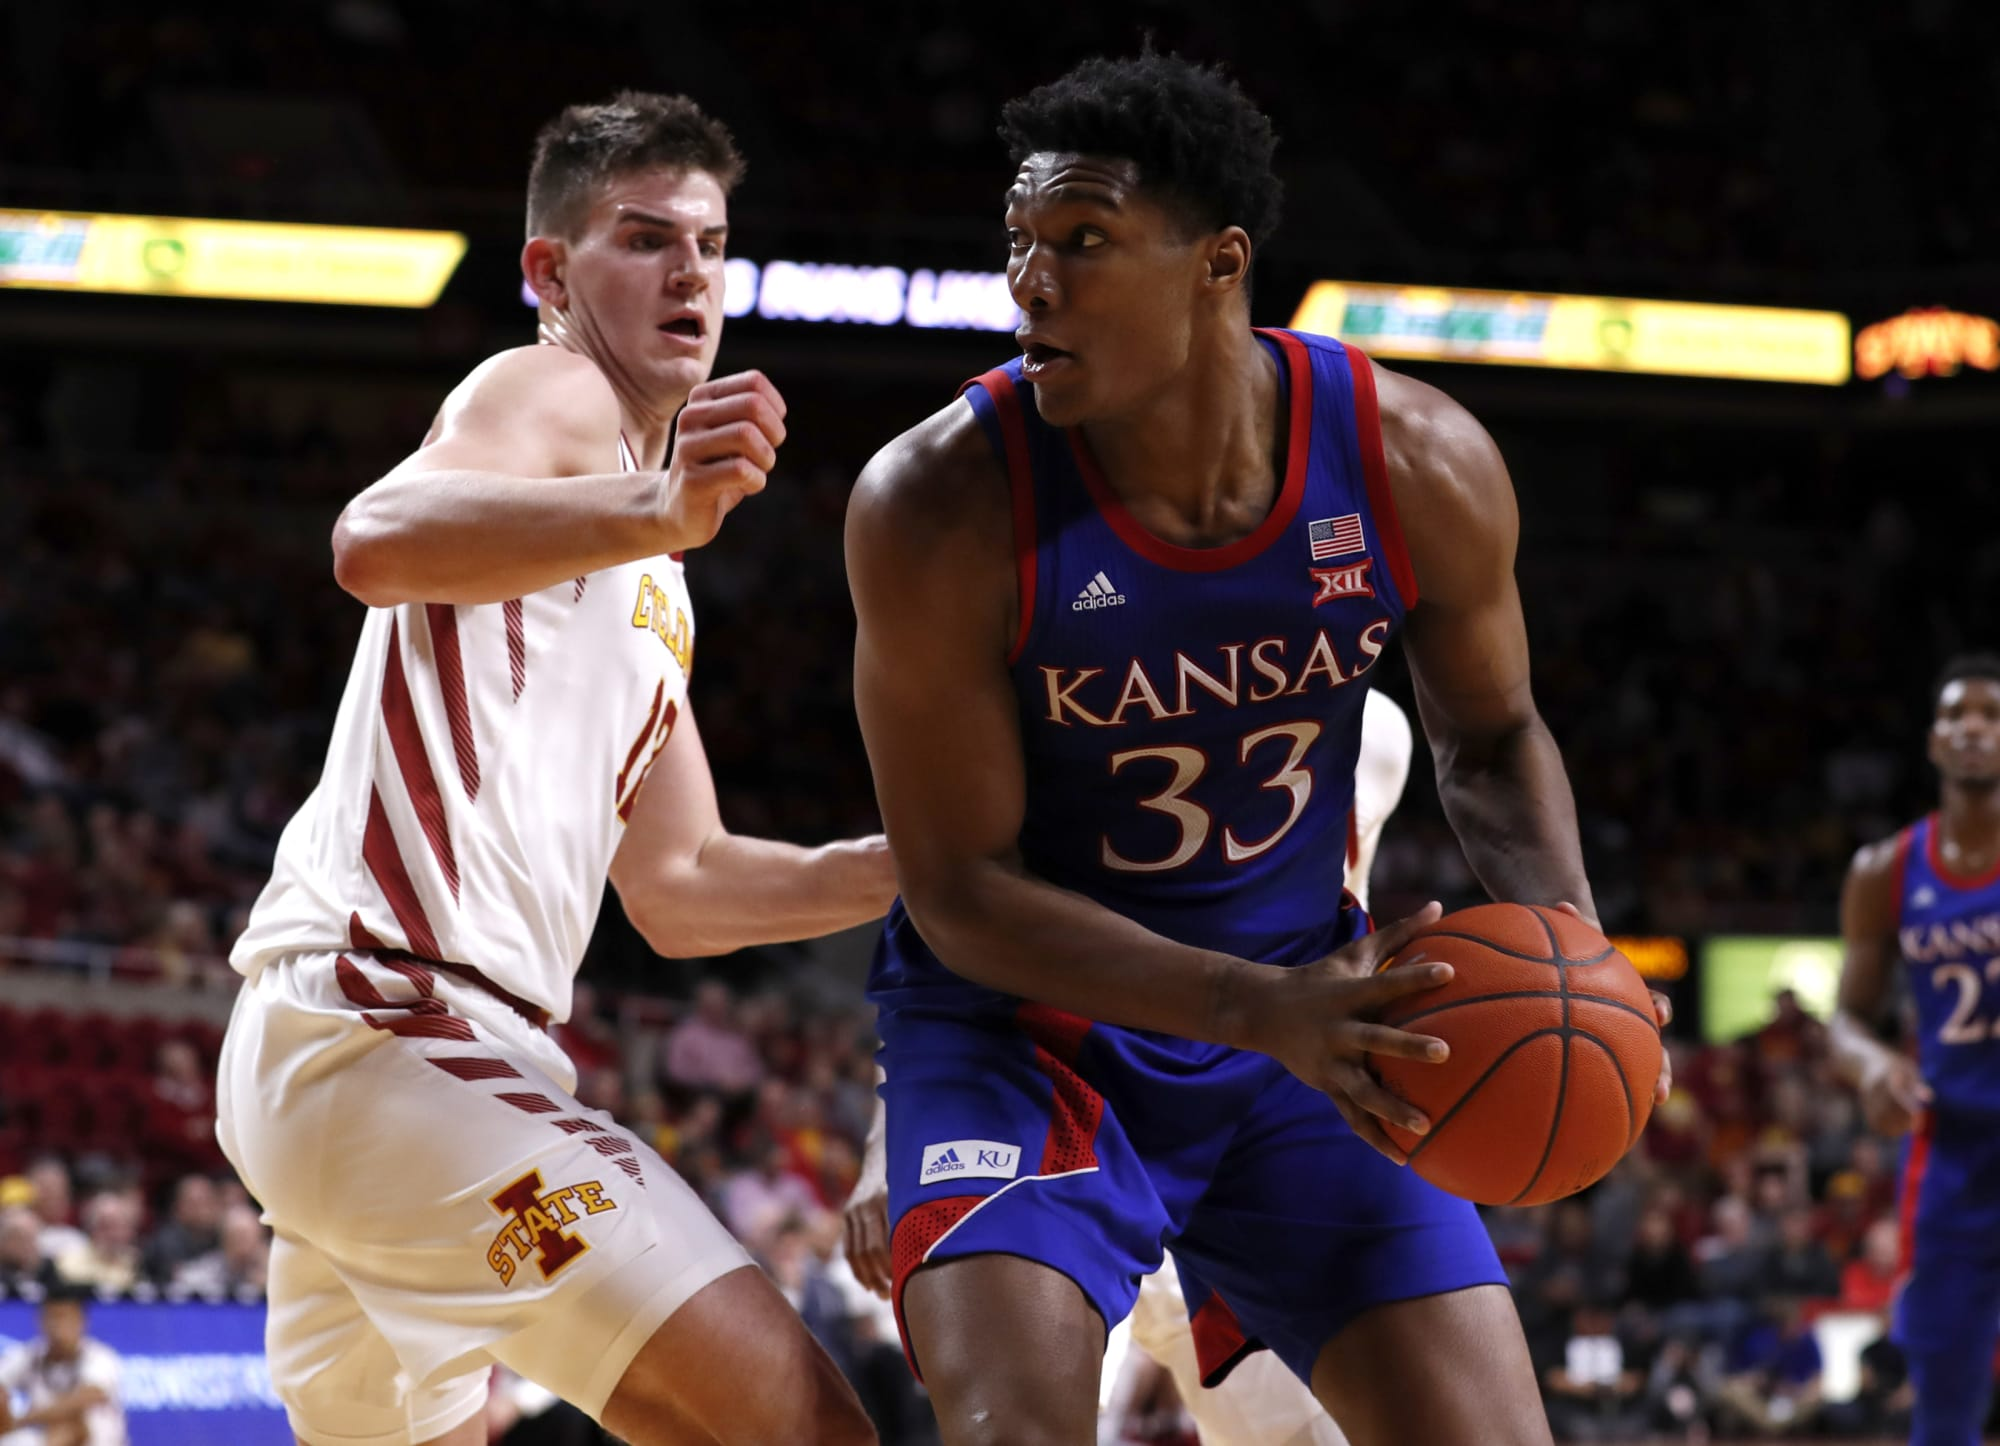 Kansas basketball's 2020 non-conference schedule is ridiculously difficult